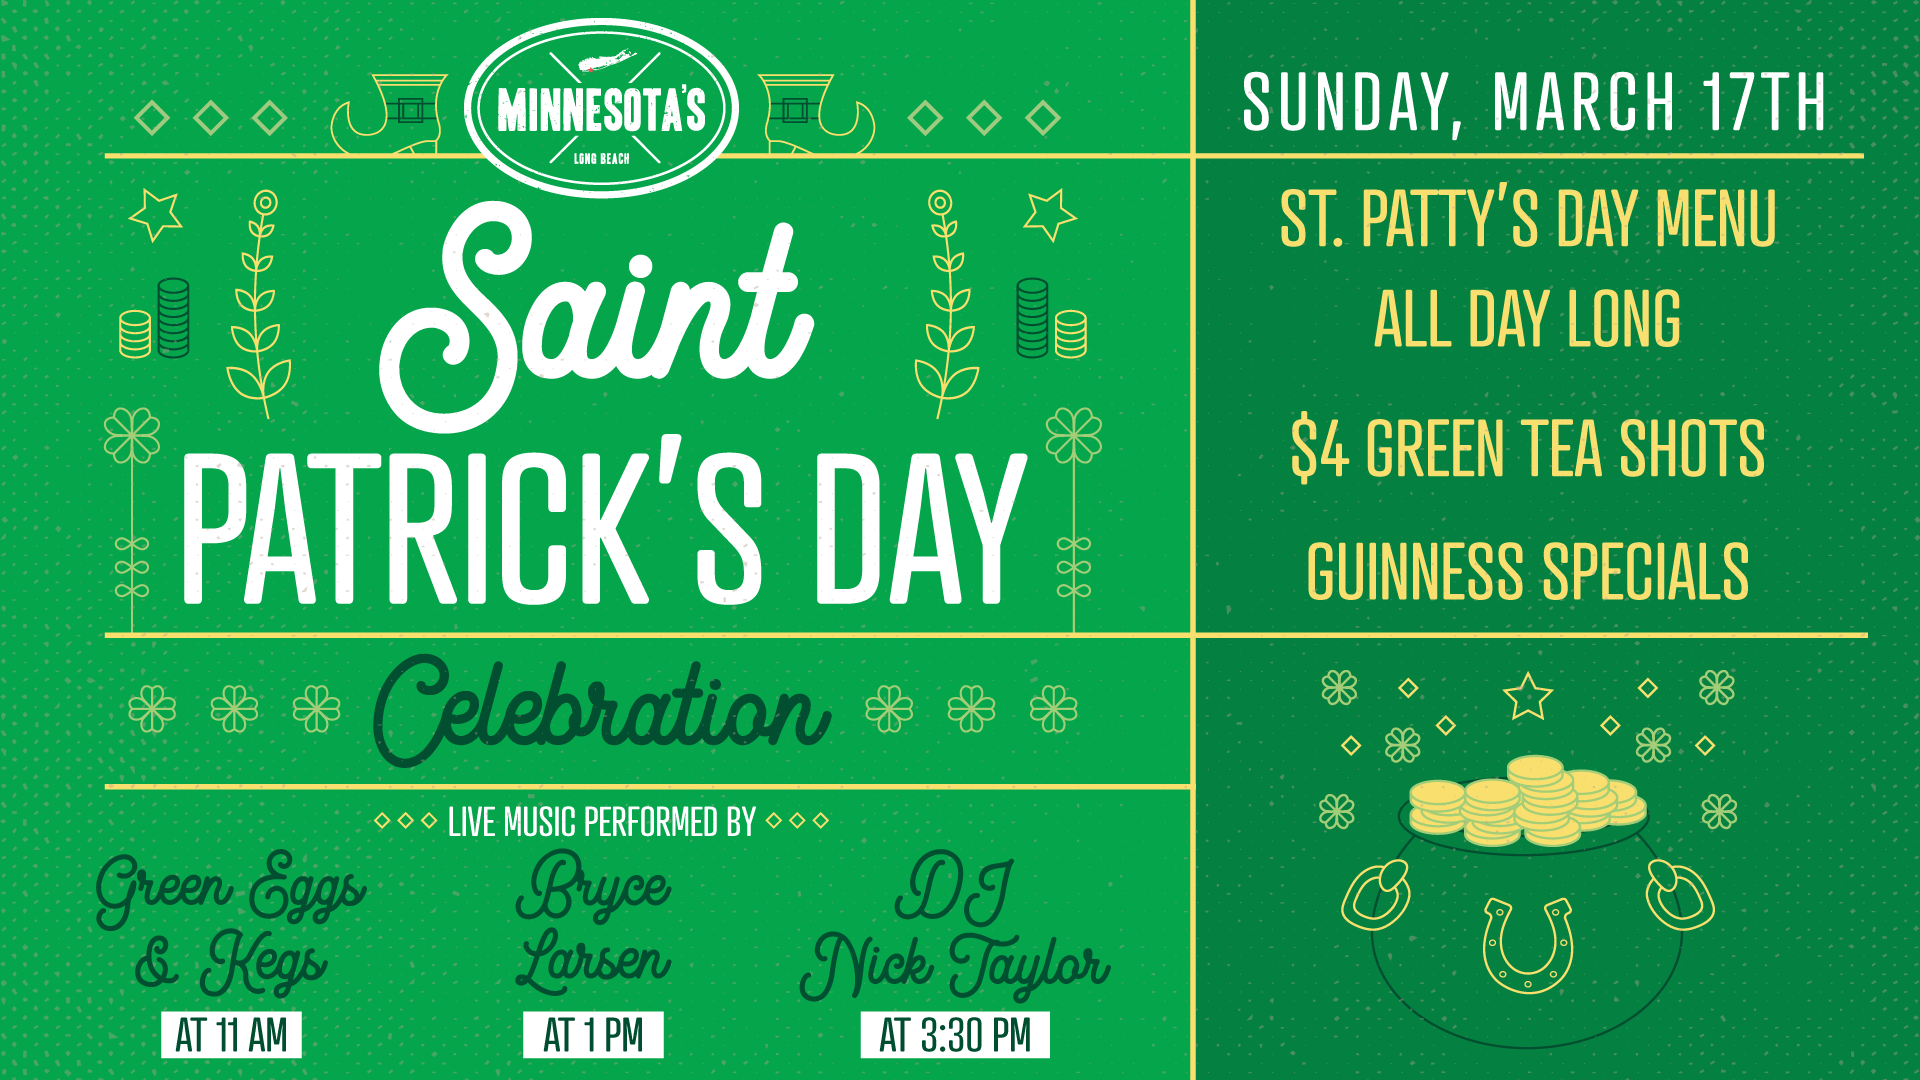 St. Patrick's Day celebration. 3/17/19, live music with Bryce Larson. St. Patty's Day Menu all day long, $4 green tea shots, and Guinness specials